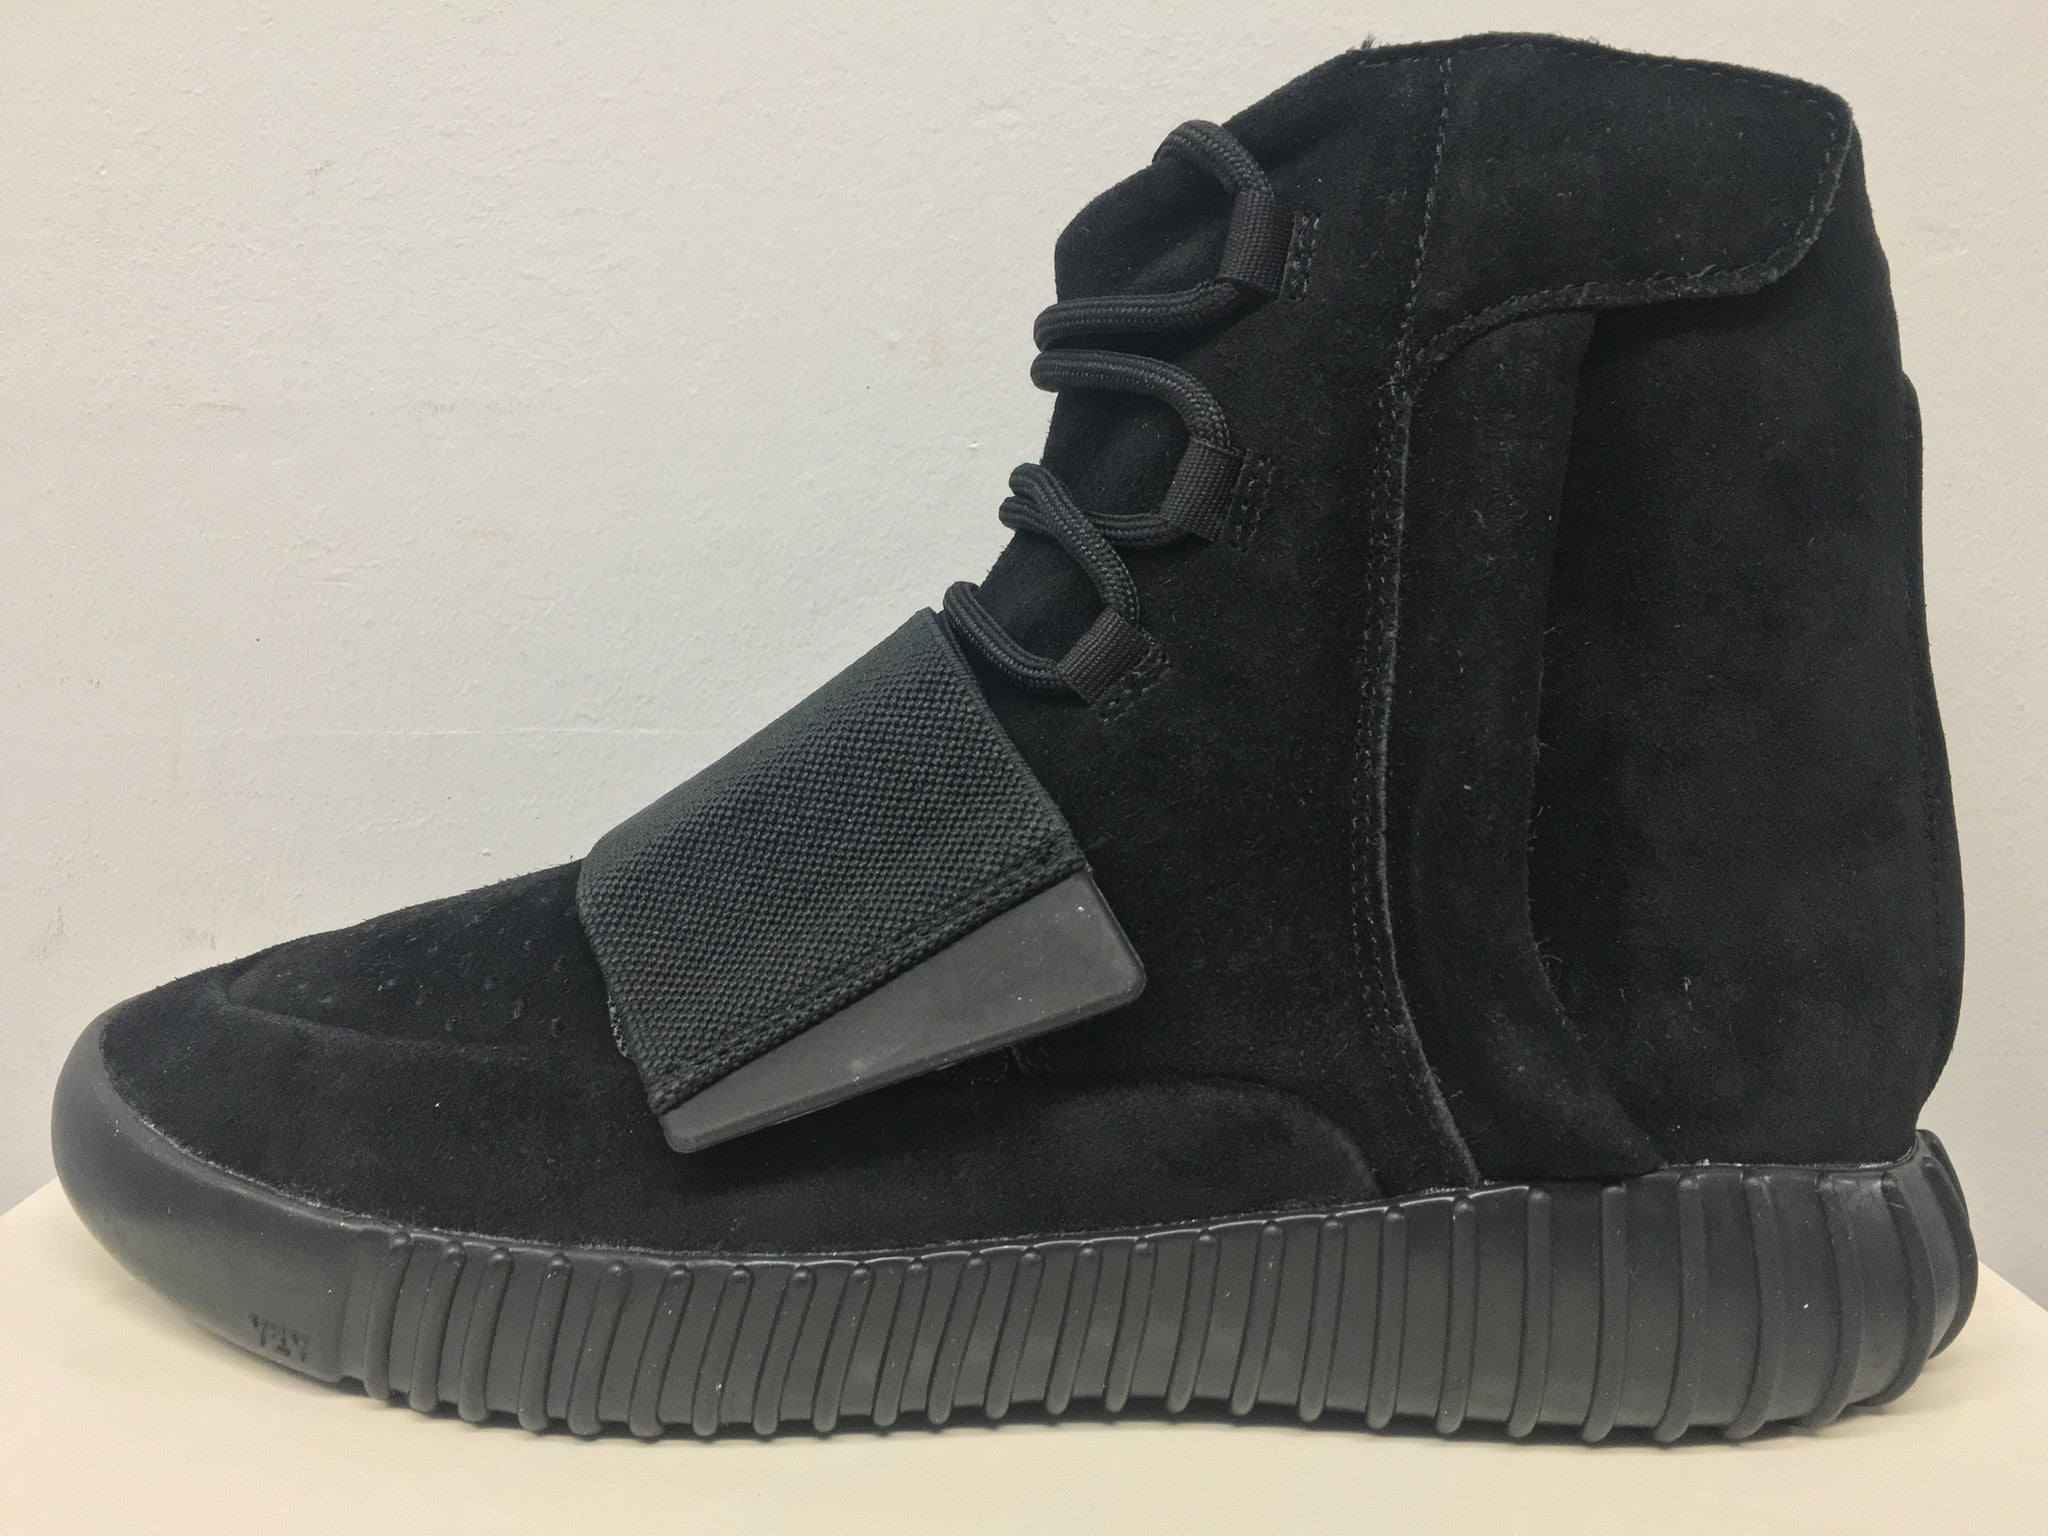 6283d631a Adidas X Yeezy Boost 750 Triple Black